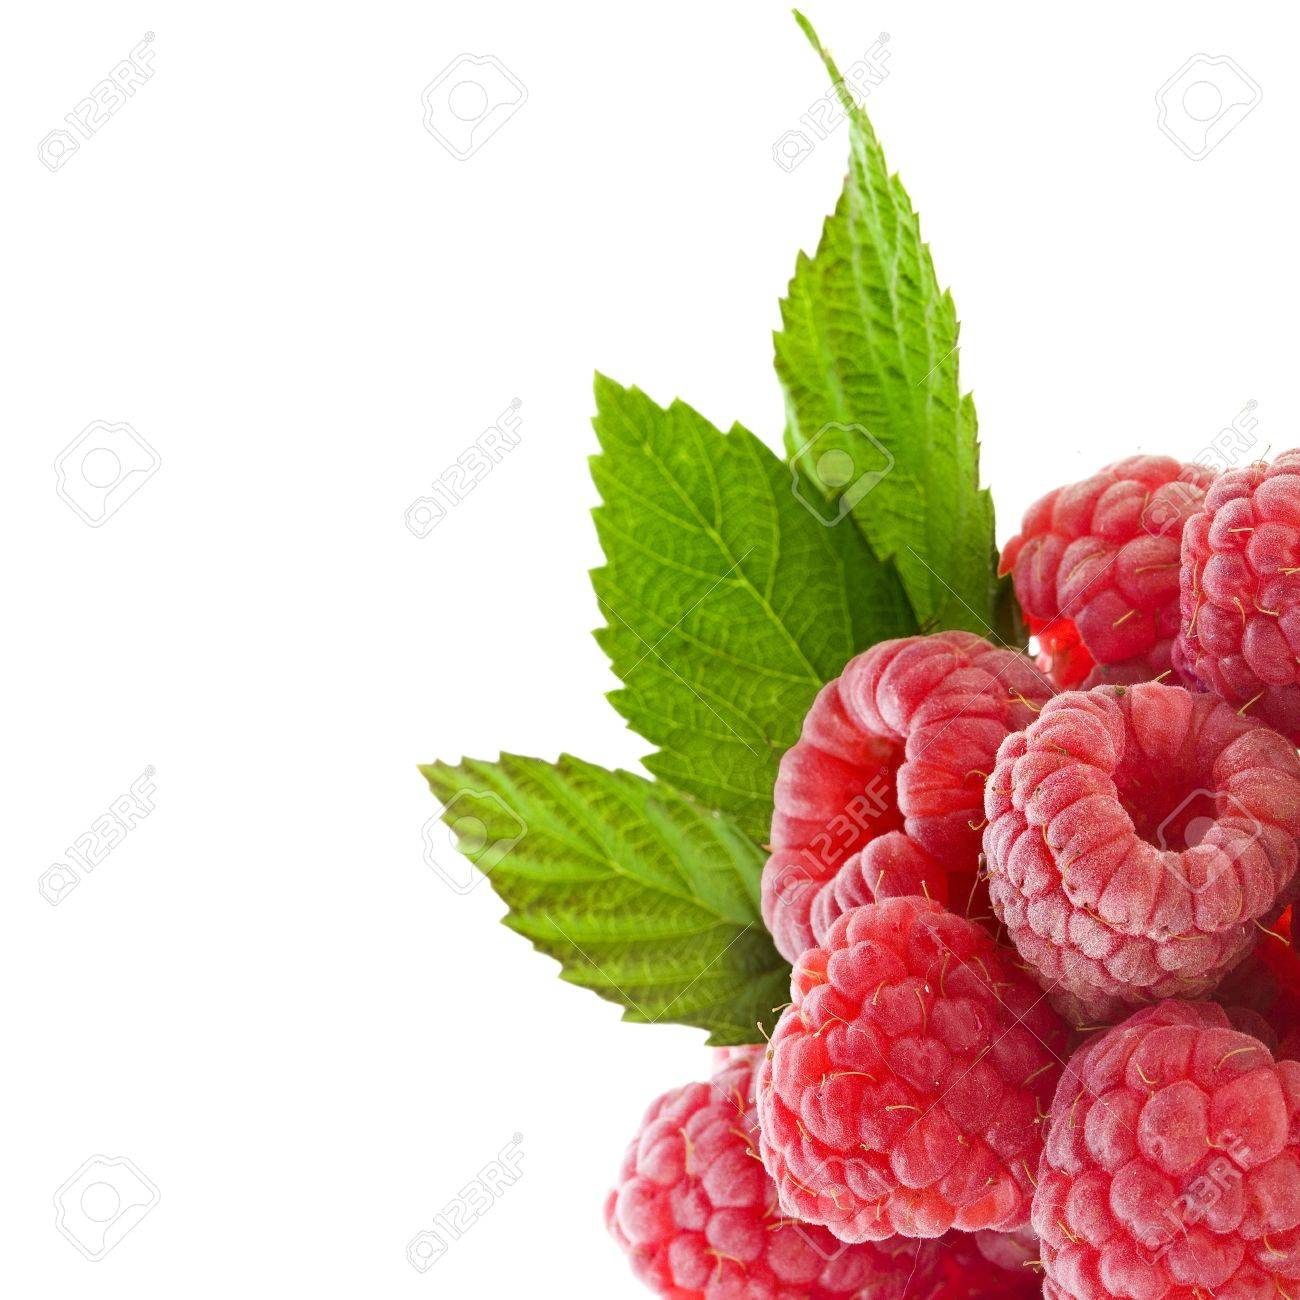 Corner Border Of Ripe Raspberry With Green Leaves Close Up ...